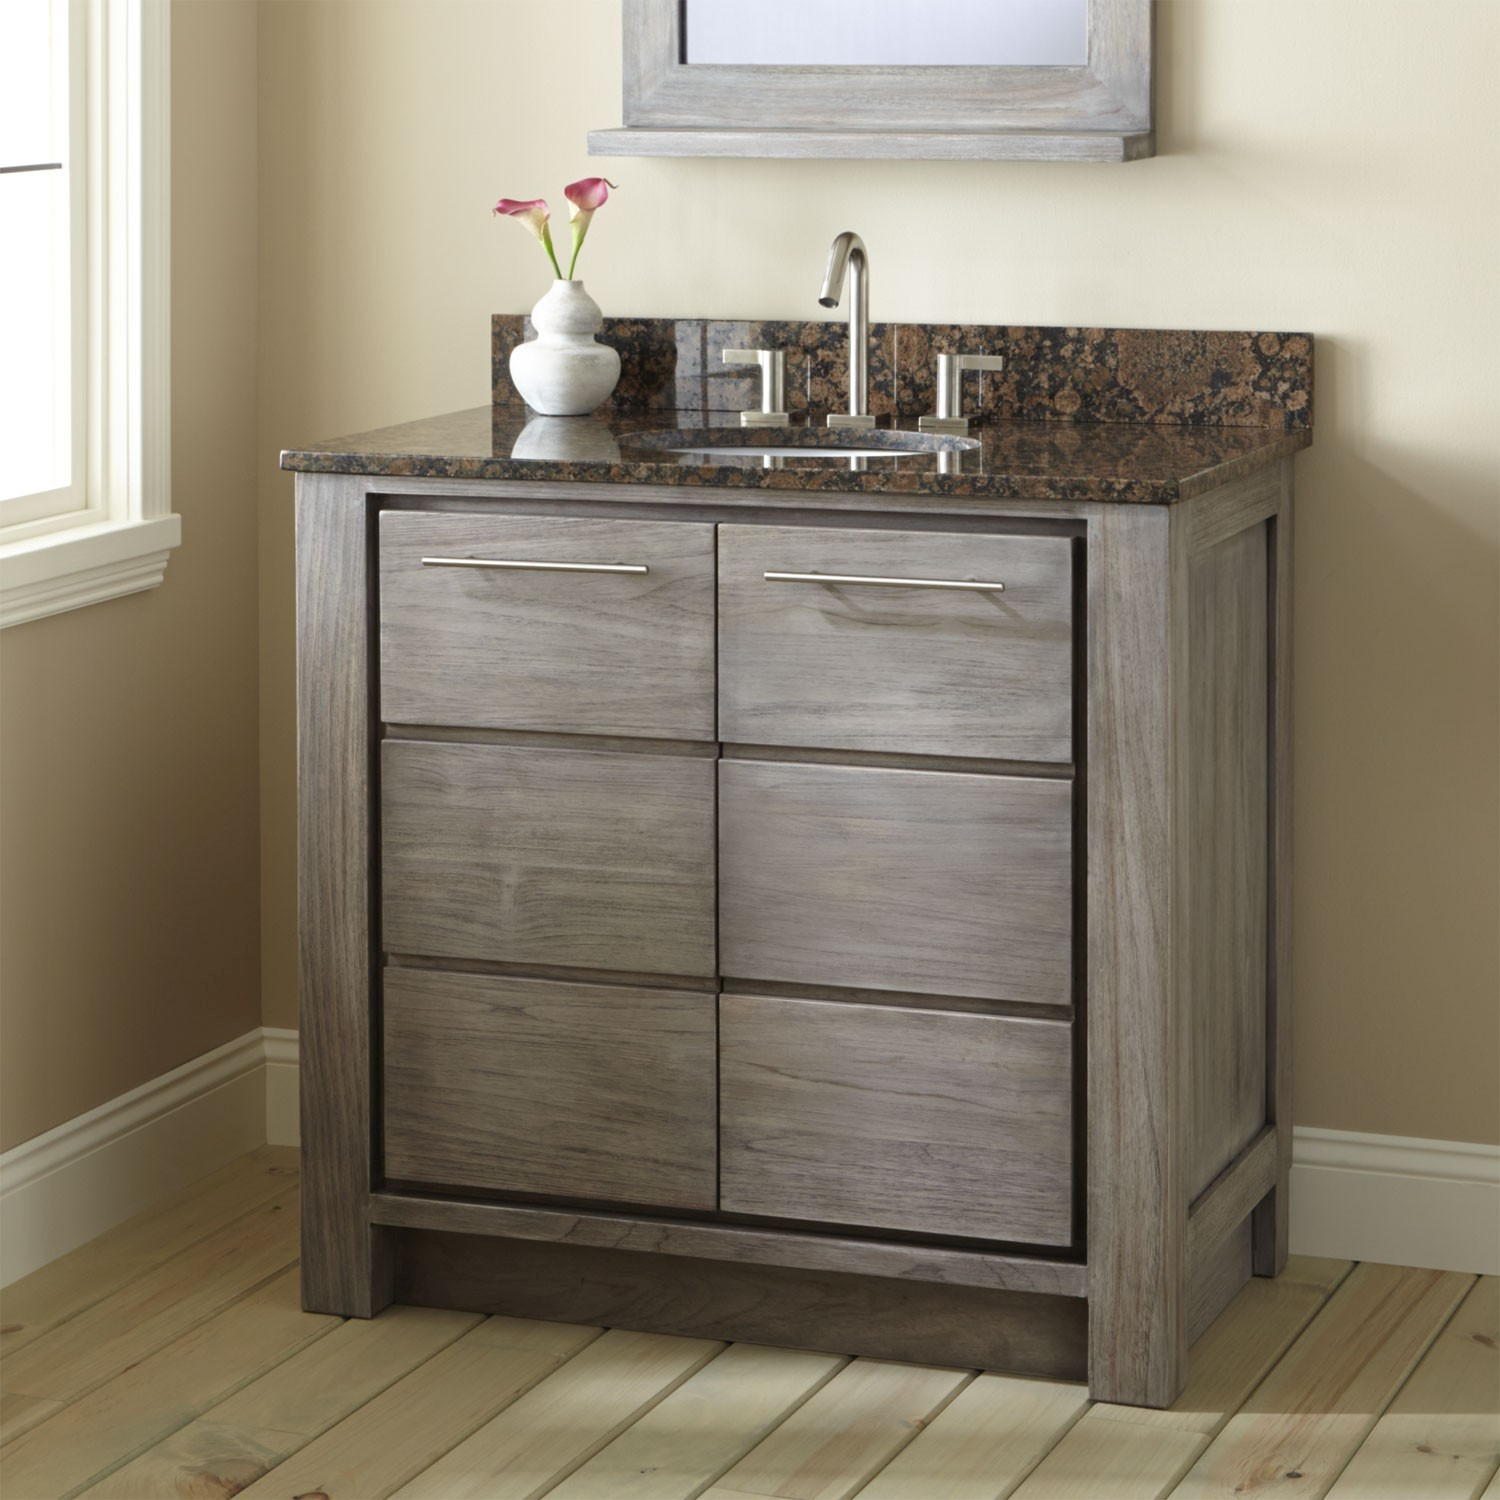 Bathroom Vanity 36 Inch Fresh Venica Teak Vanity for Undermount Sink Gray Wash Bathroom Plan